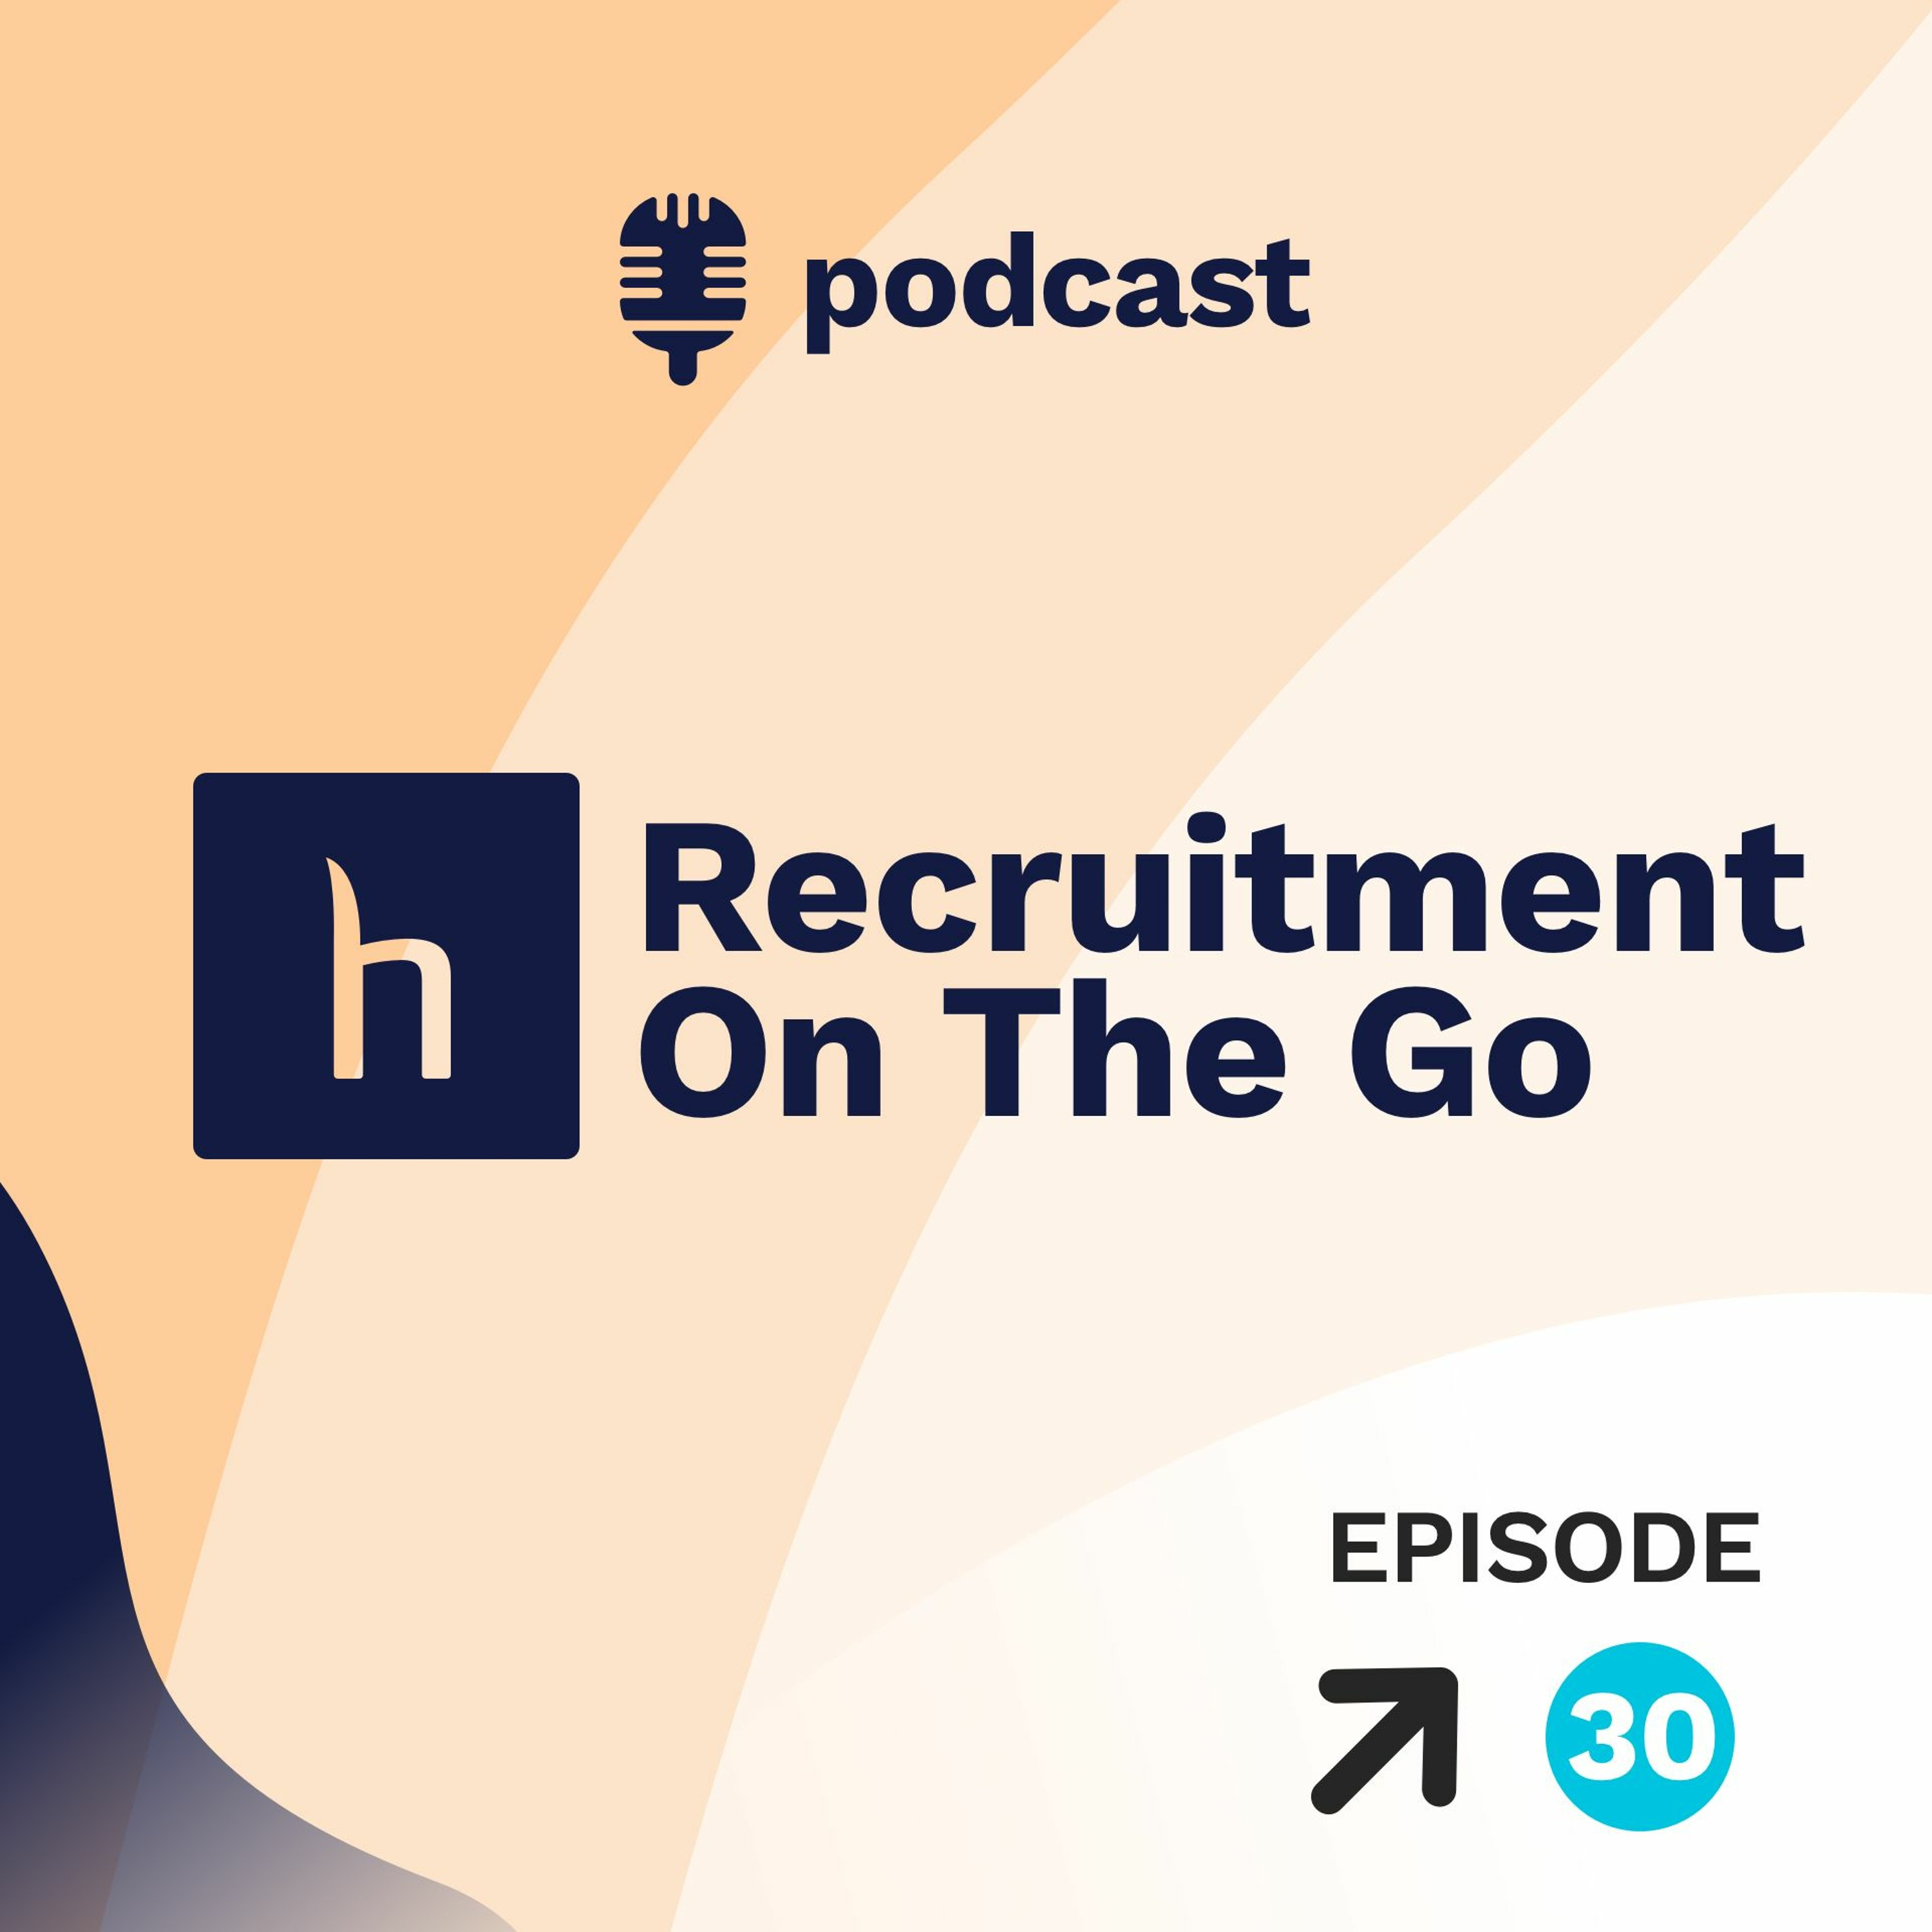 11 Top Recruiting Trends To Watch Out For 2020 - Episode 30 - Season 2